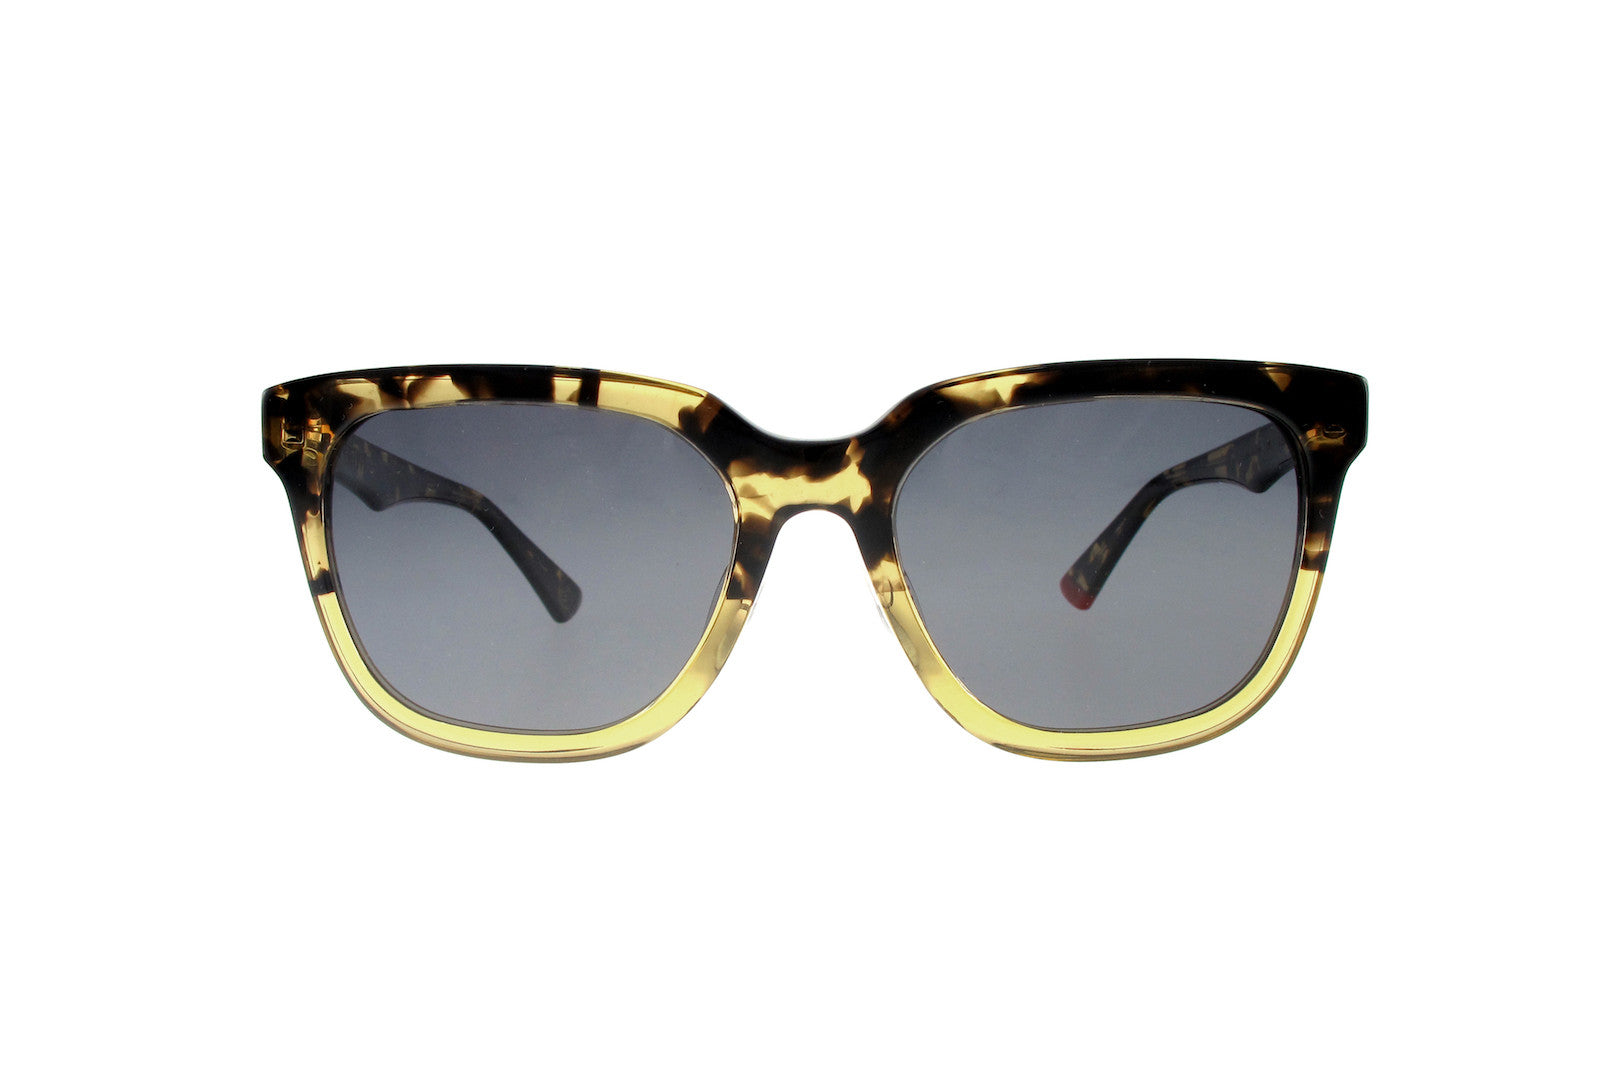 La Cienega 209 - Peppertint - Designer sunglasses